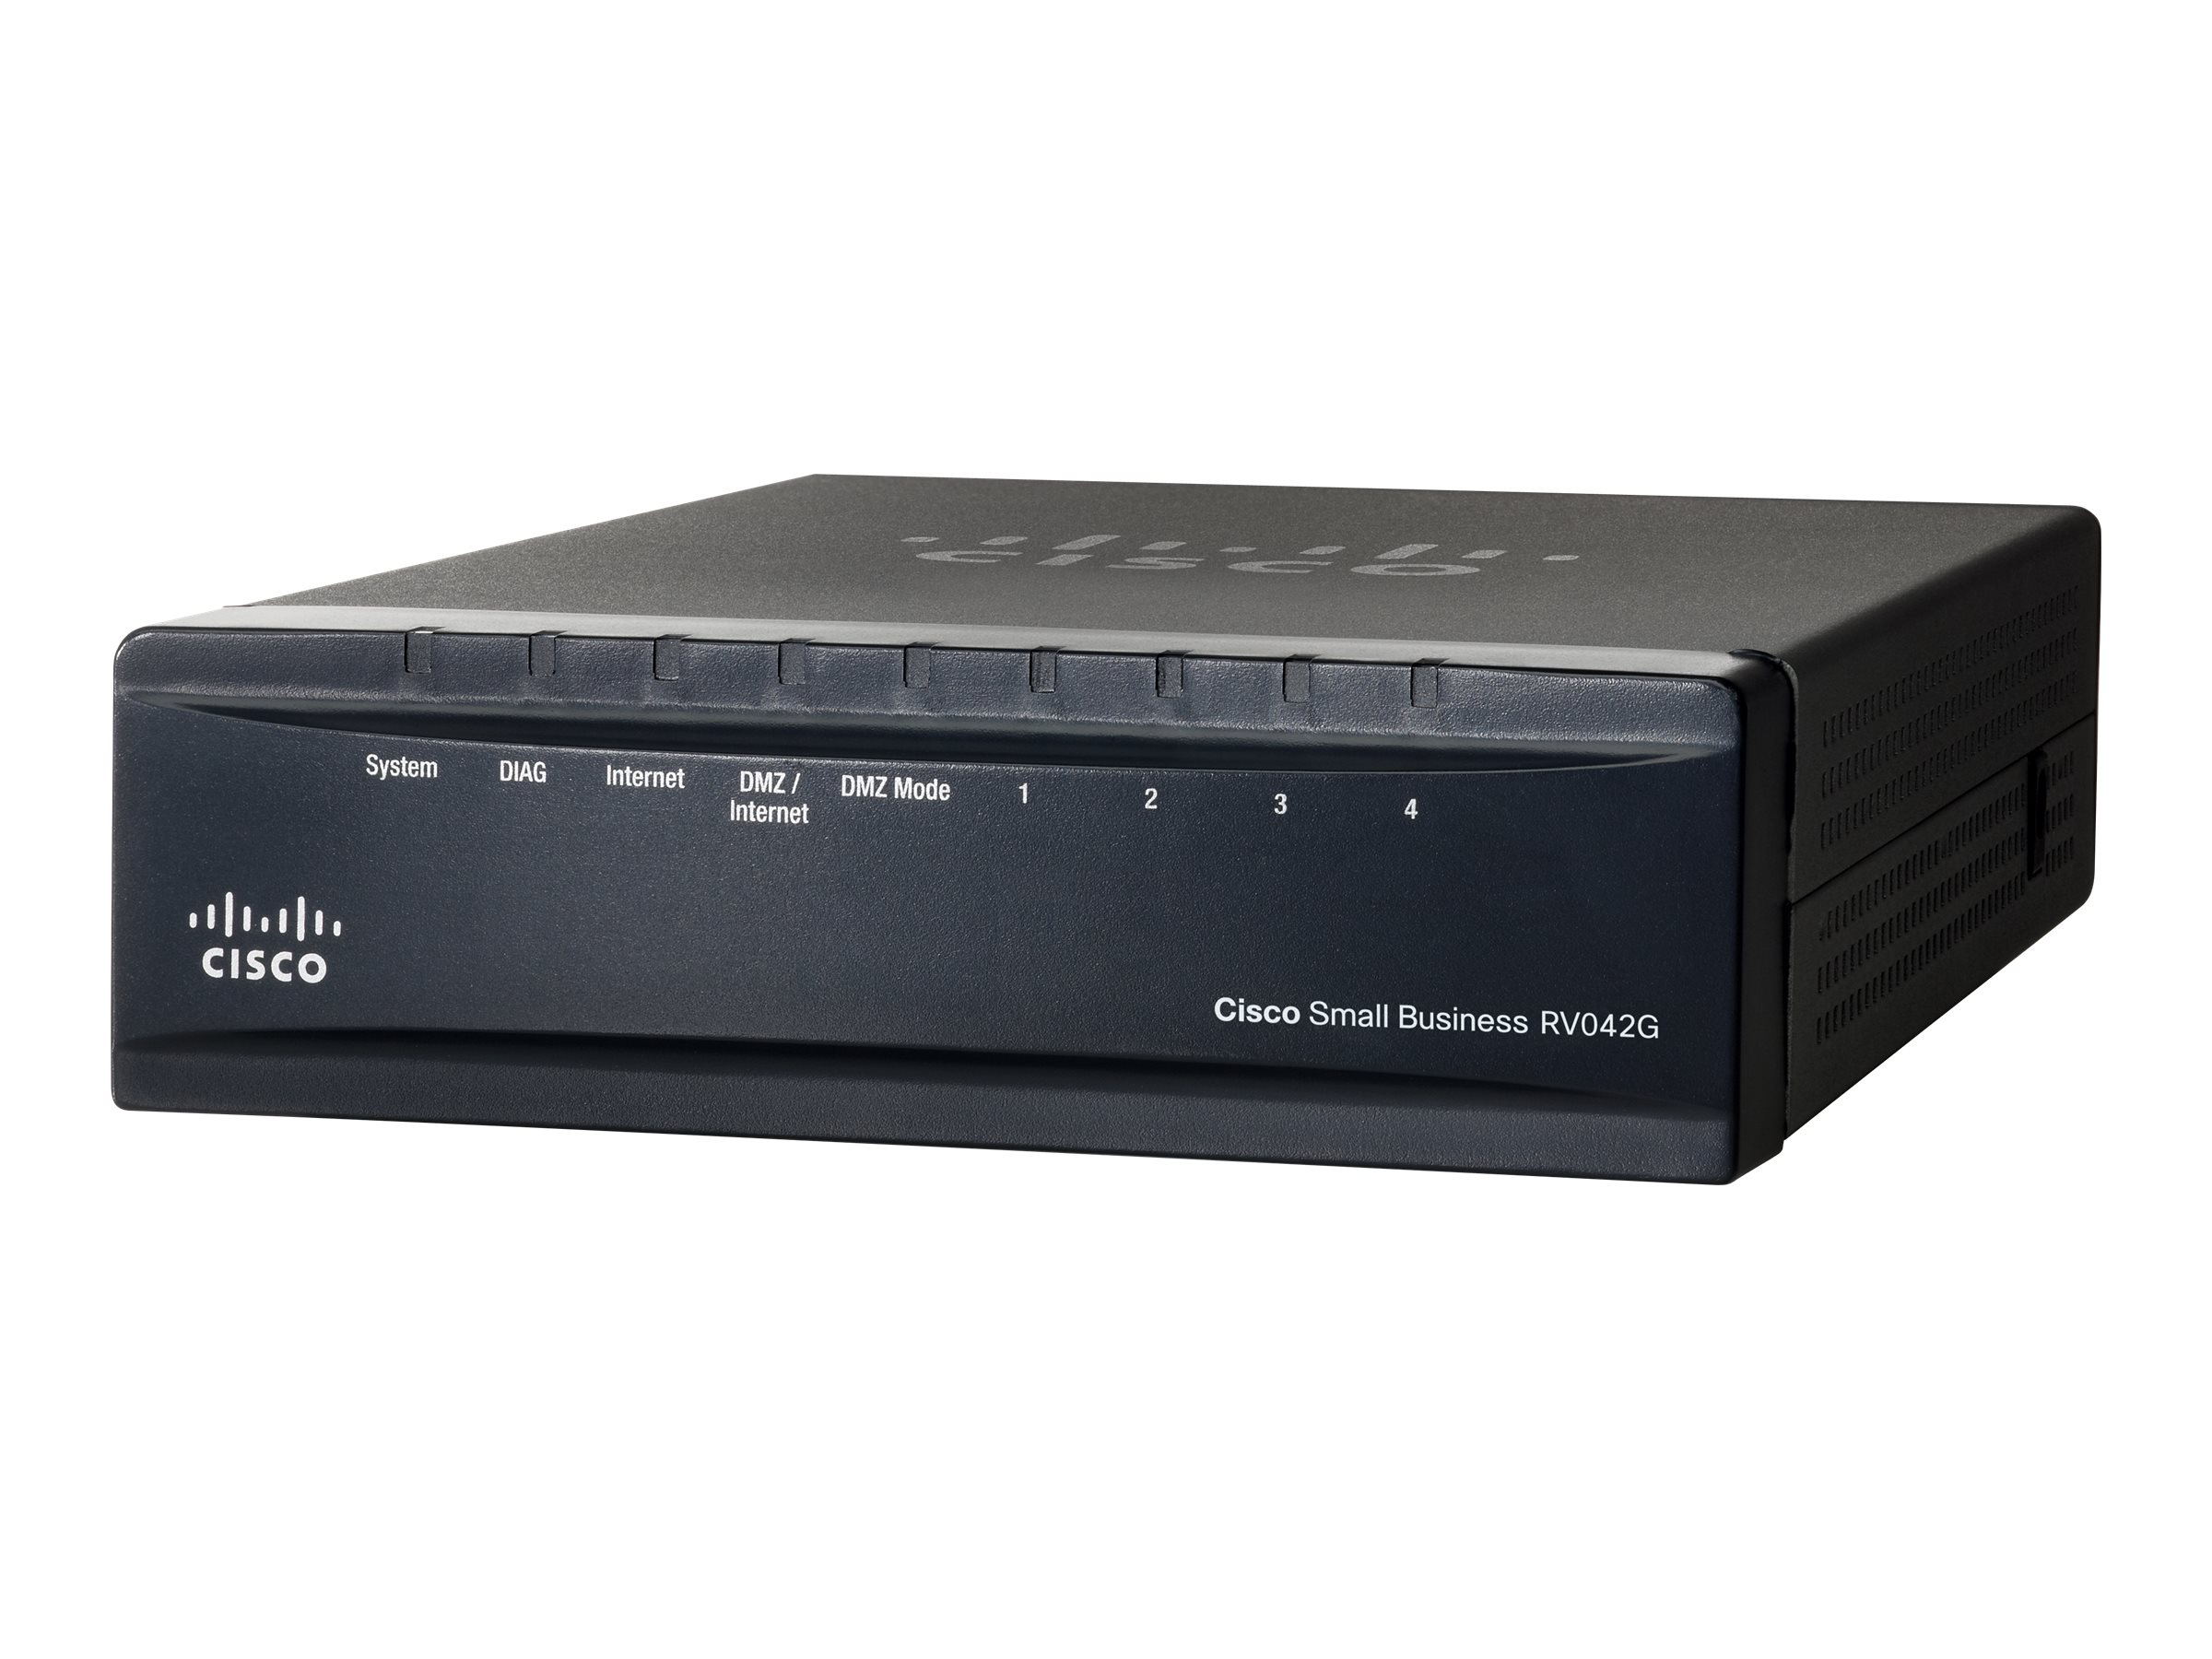 Cisco Small Business RV042G - Router - 4-Port-Switch - GigE - WAN-Ports: 2